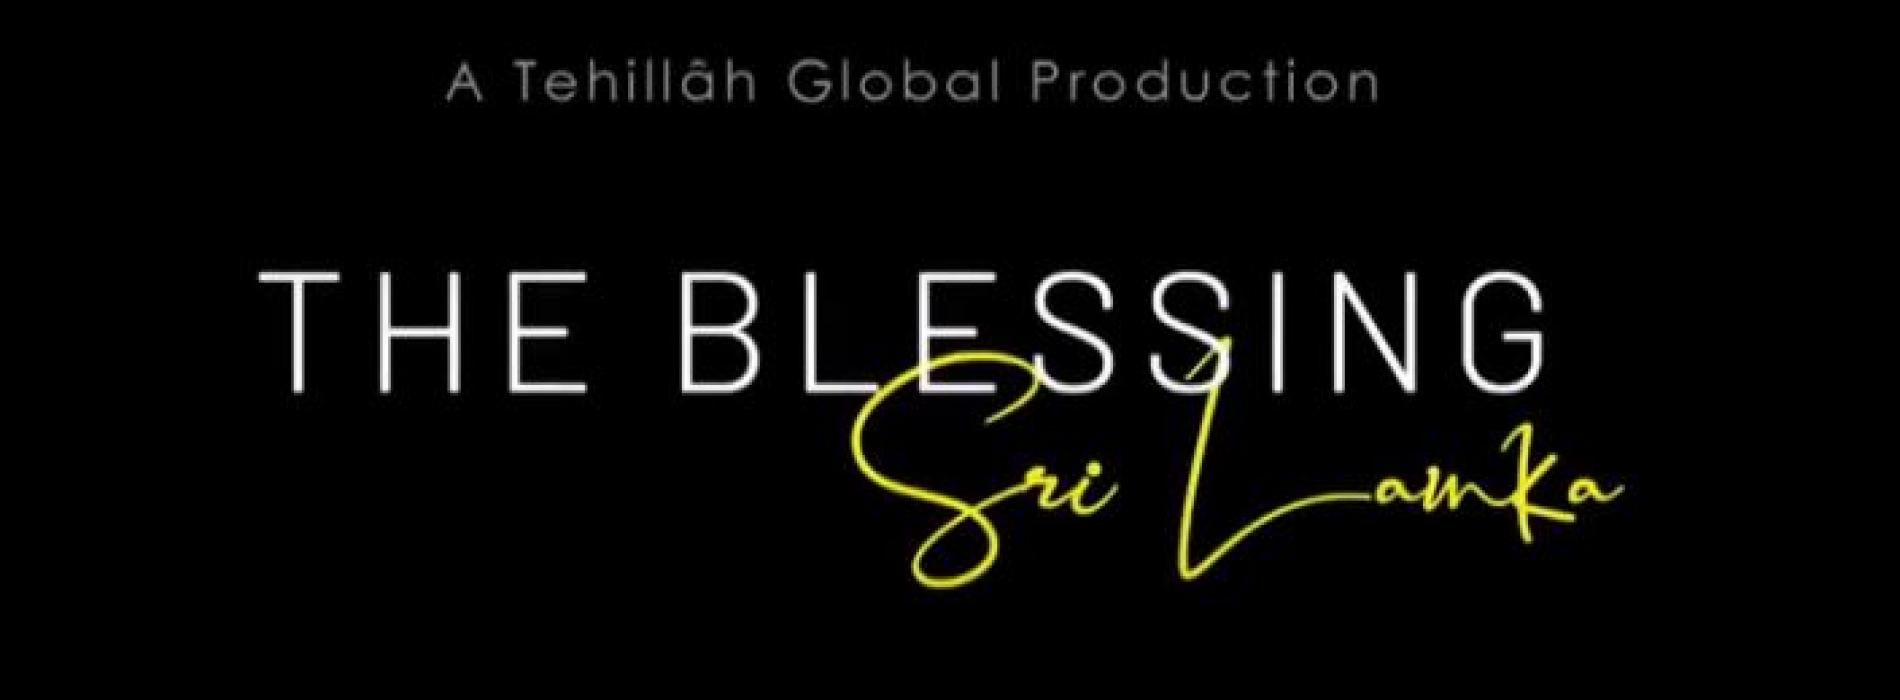 New Music : Tehillah Global – The Blessing Sri Lanka – ආශීර්වාදය – ஆசீர்வாதம் | Cover